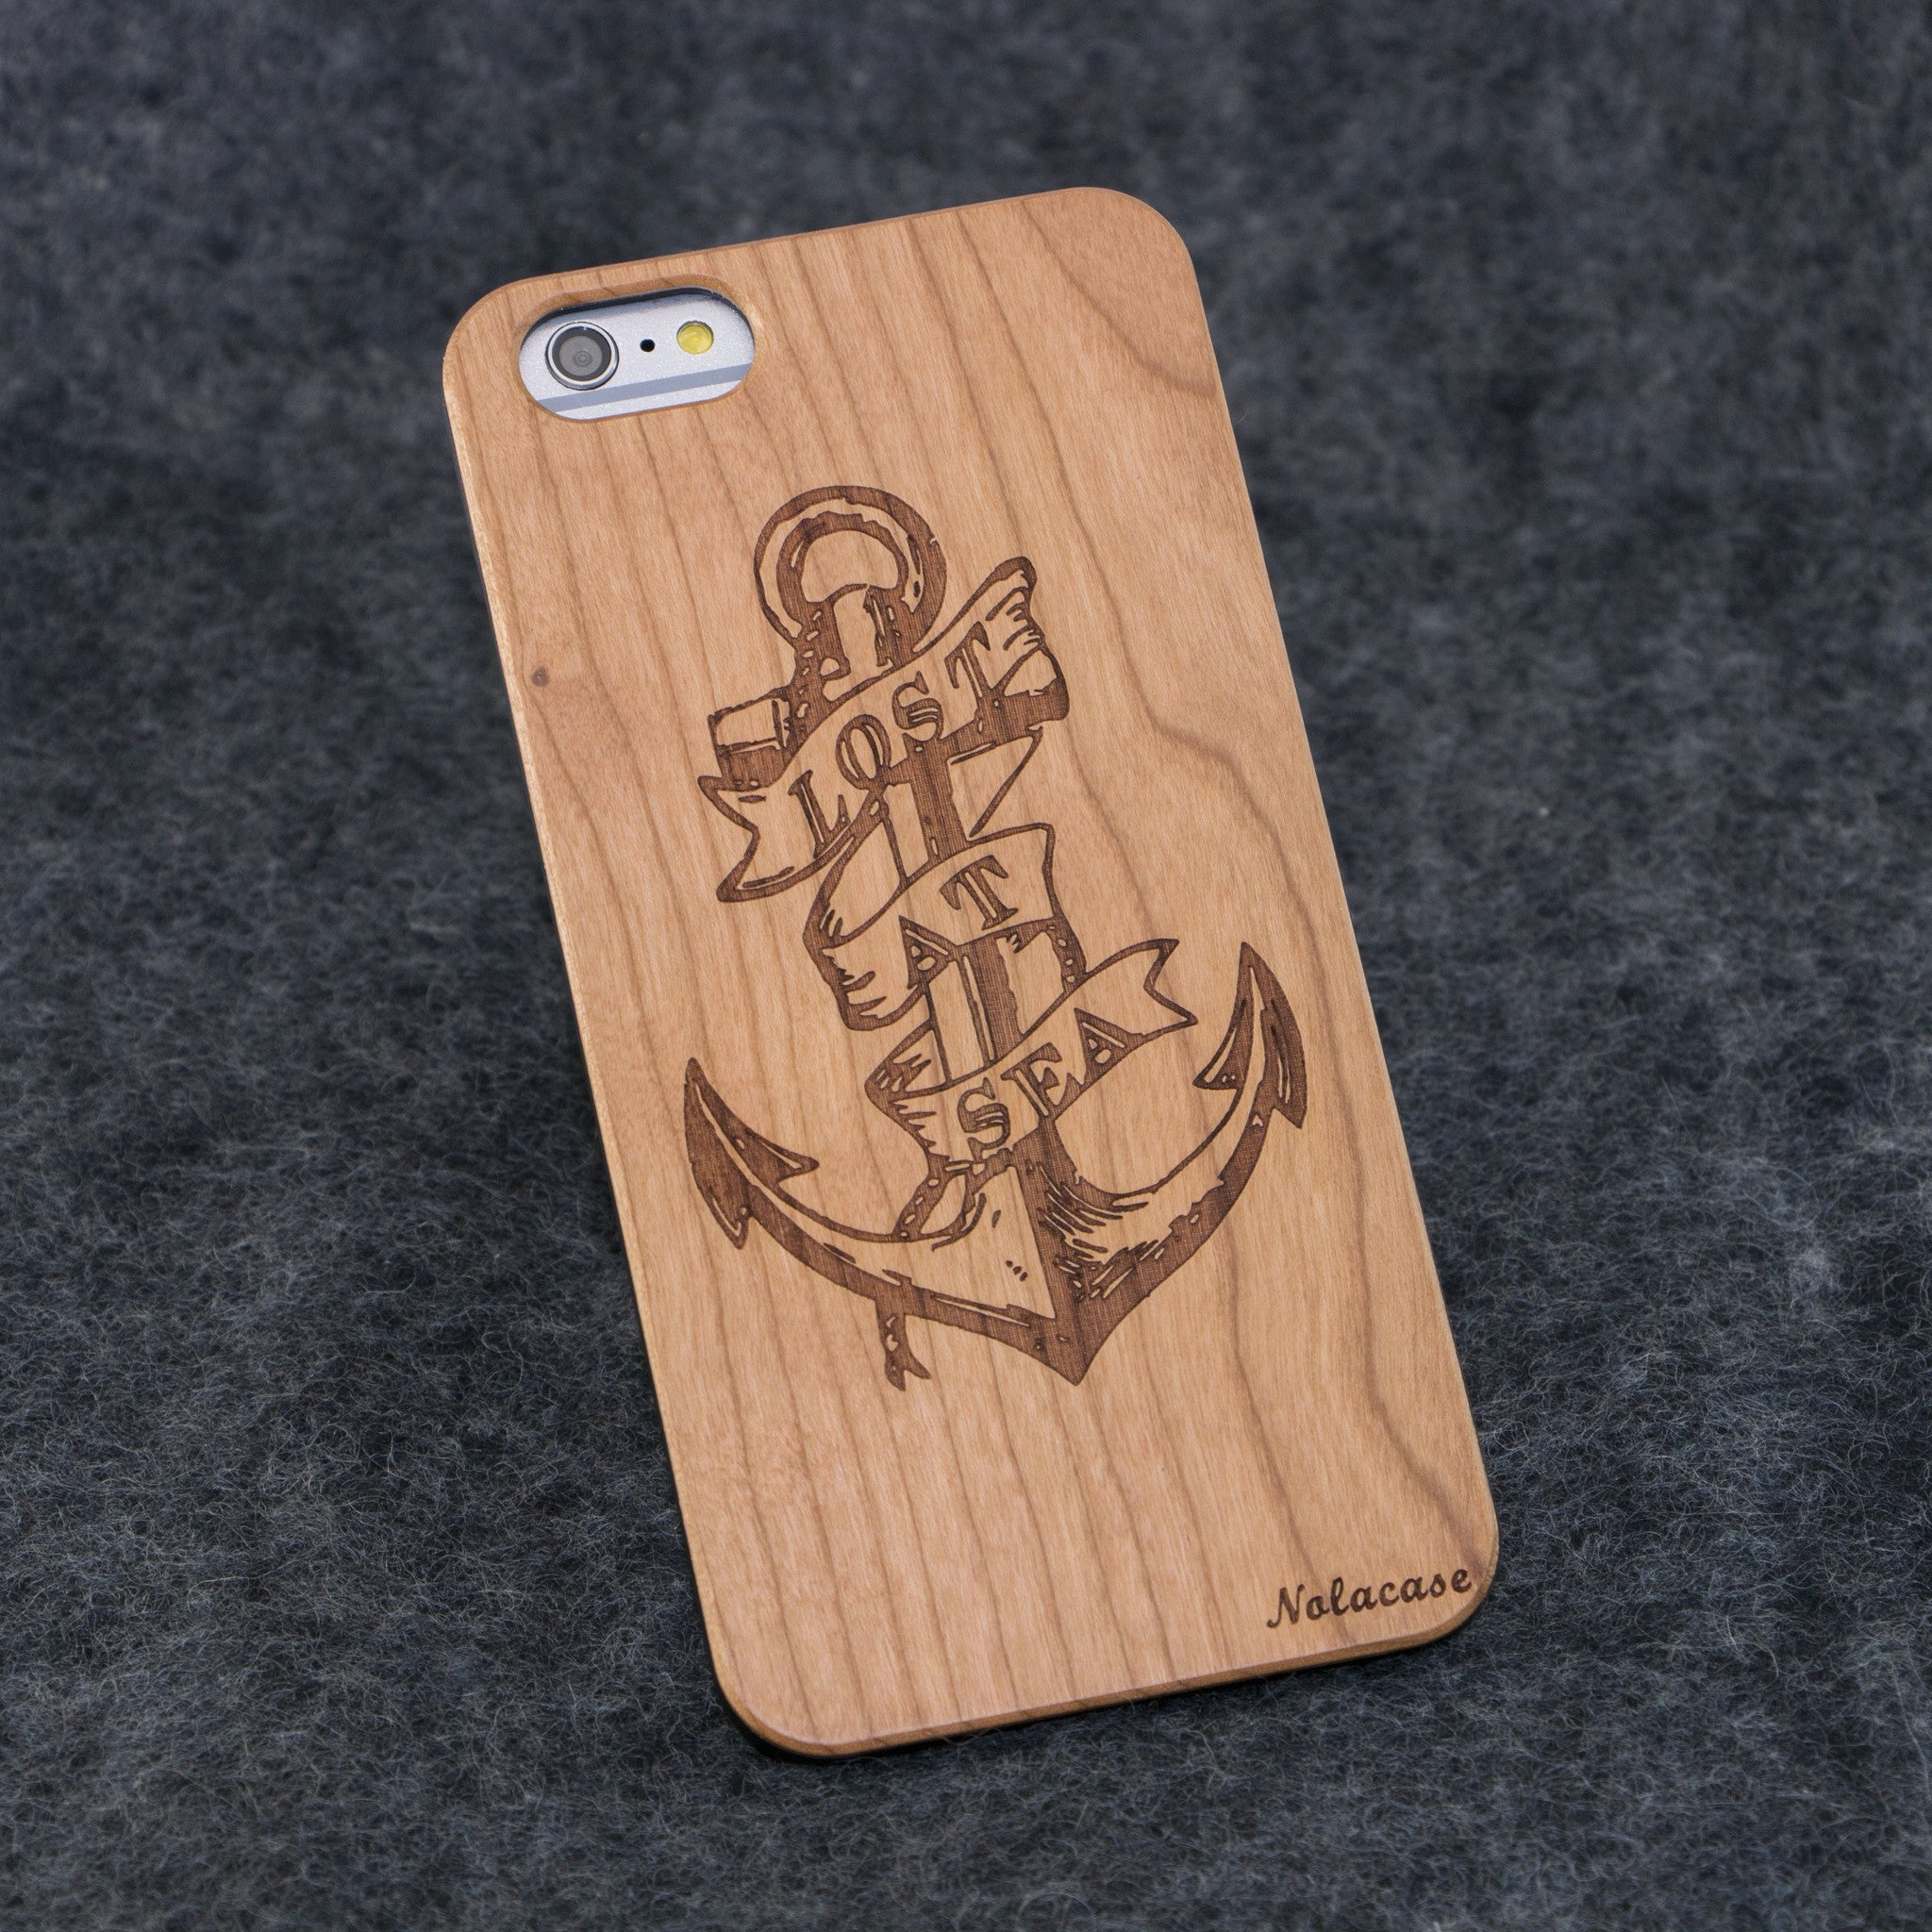 iPhone 6+ Lost at Sea Slim Wood Case - NOLACASE